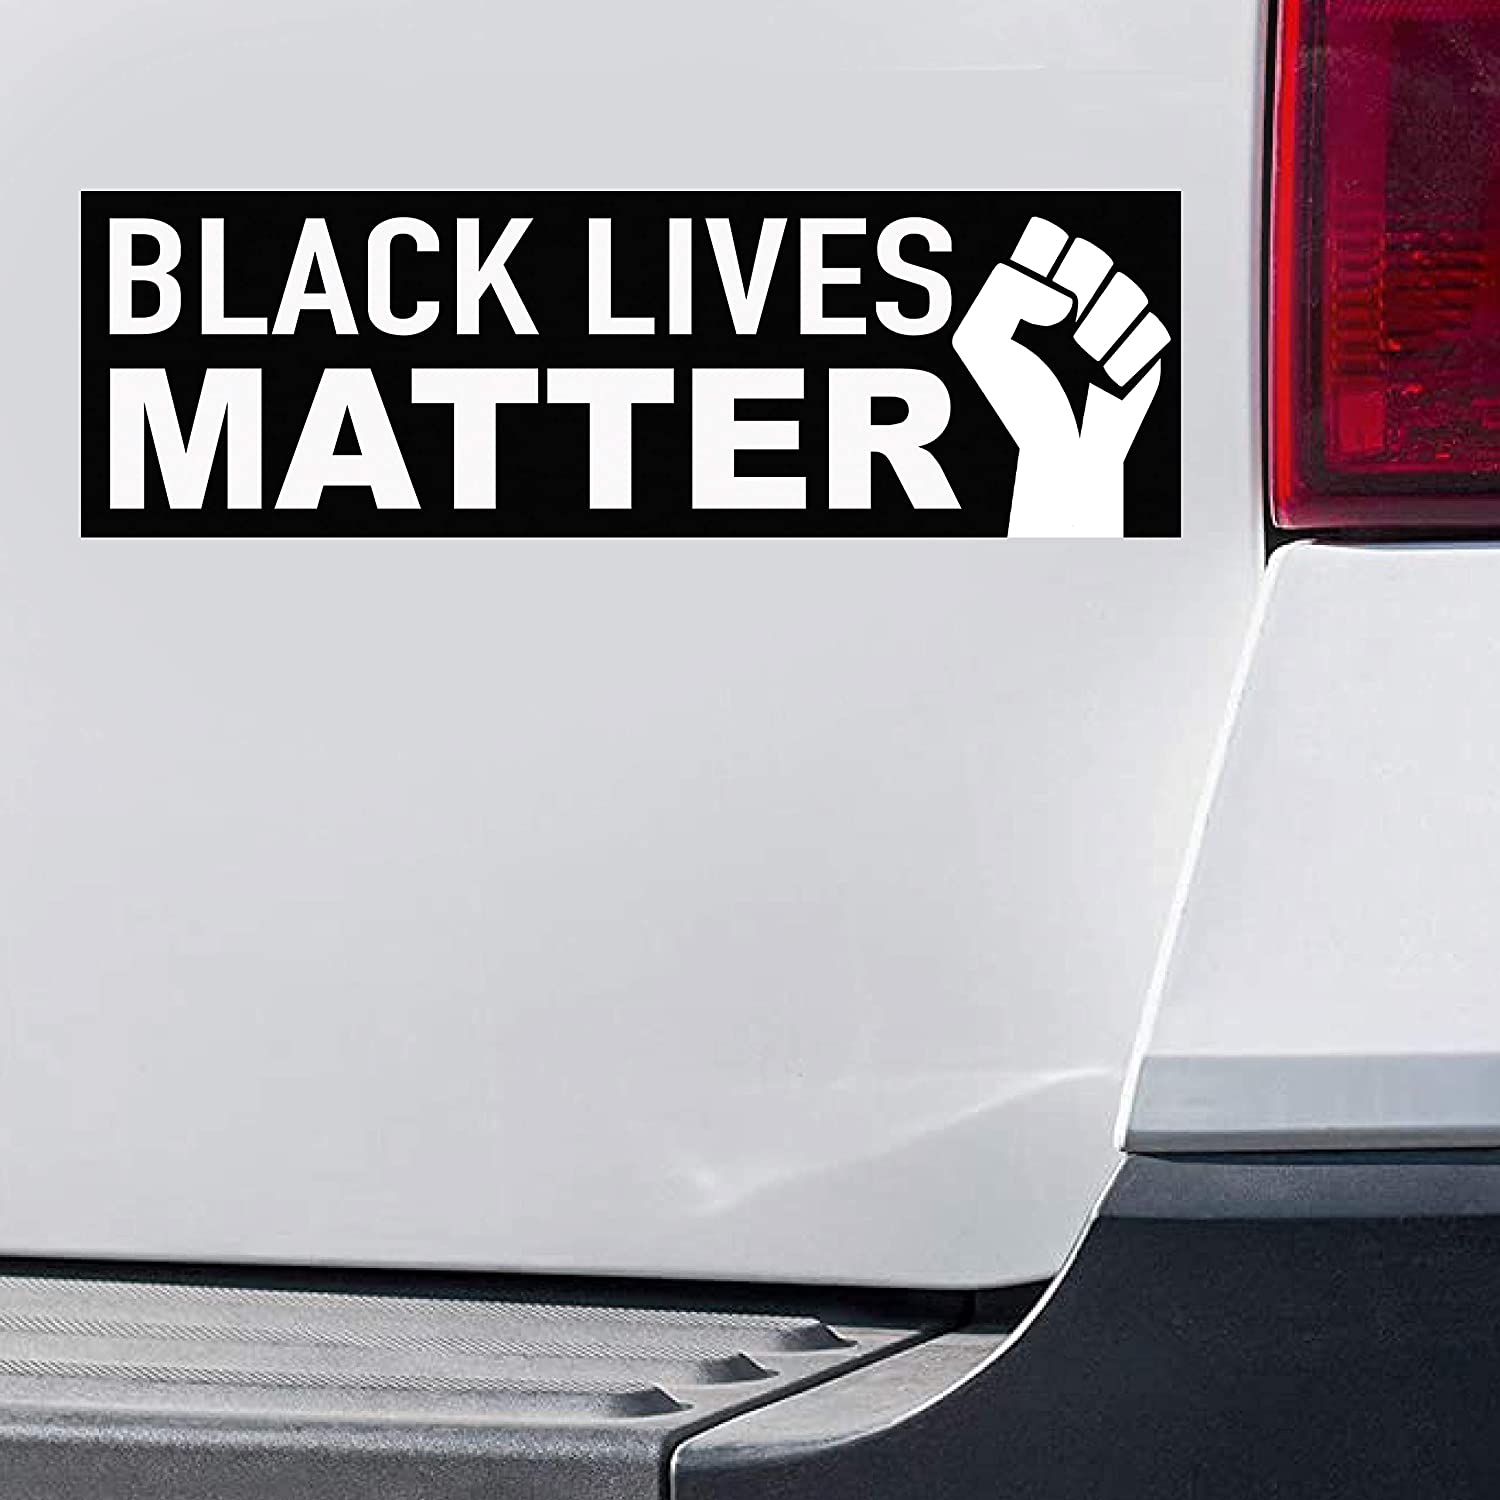 with Bonus 2 Stickers 6x 4 4x 4 Black Lives Matter Bumper Sticker 10 x 3 Vinyl Decal Protest for Laptop car Wall Bottle Window Luggage Travel Stickers Scrapbooking Skateboard